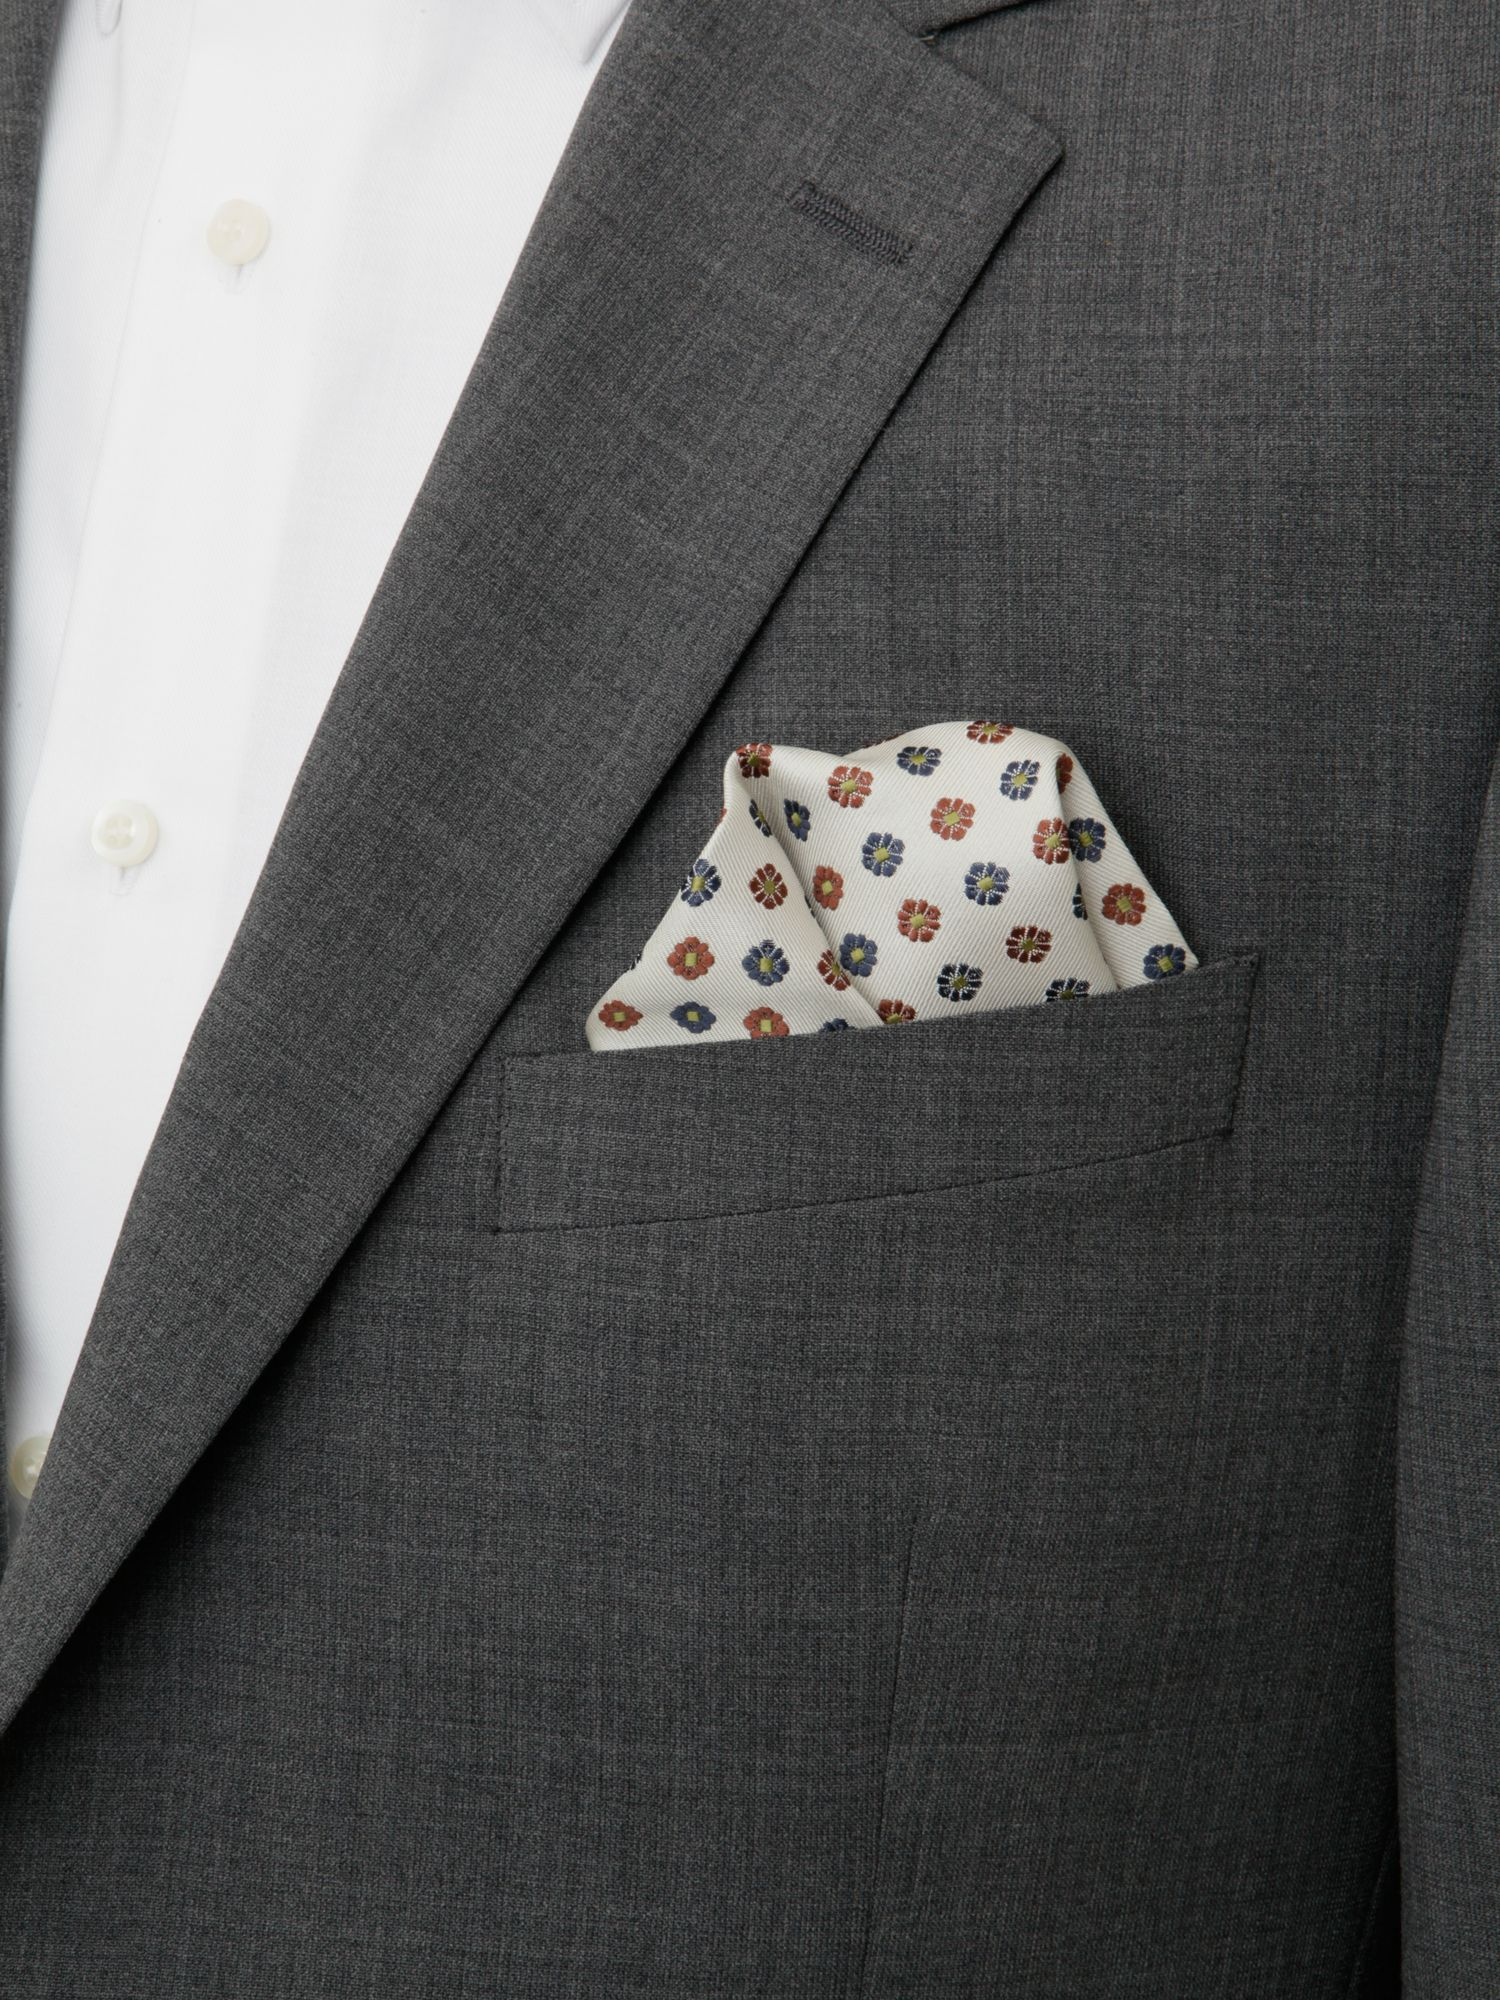 Fancy pocket squares